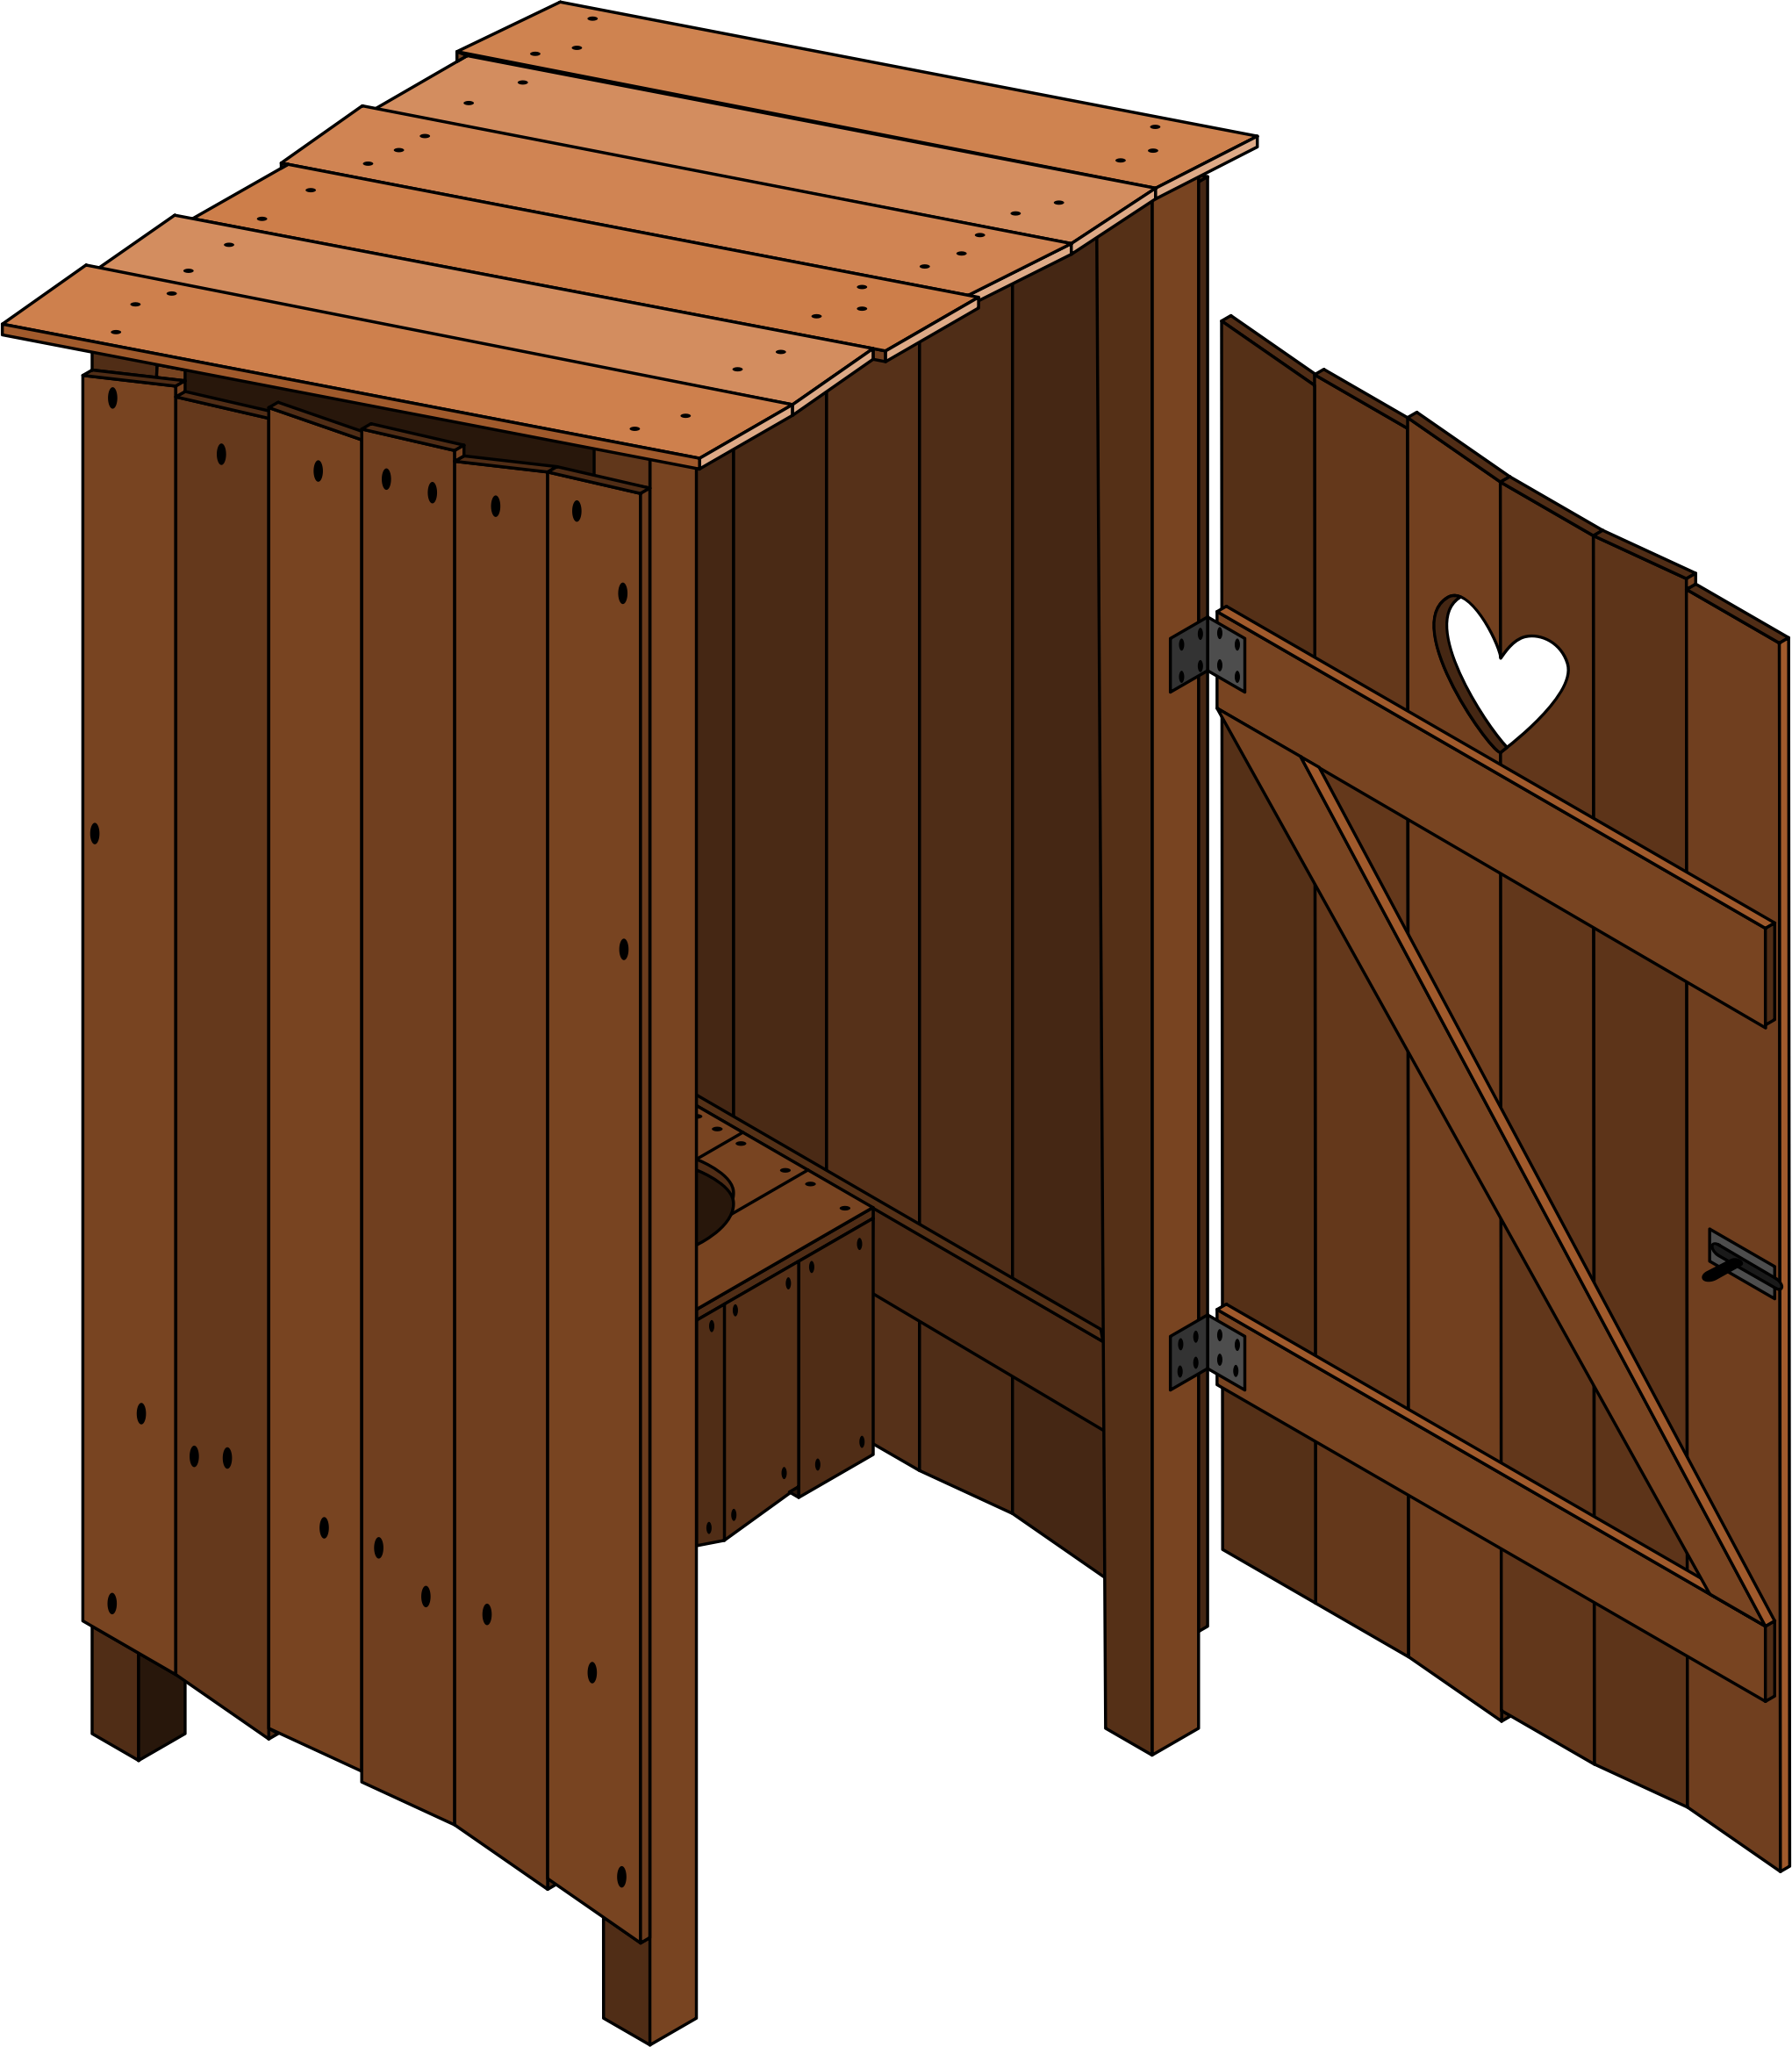 Latrines Clipart 20 Free Cliparts Download Images On